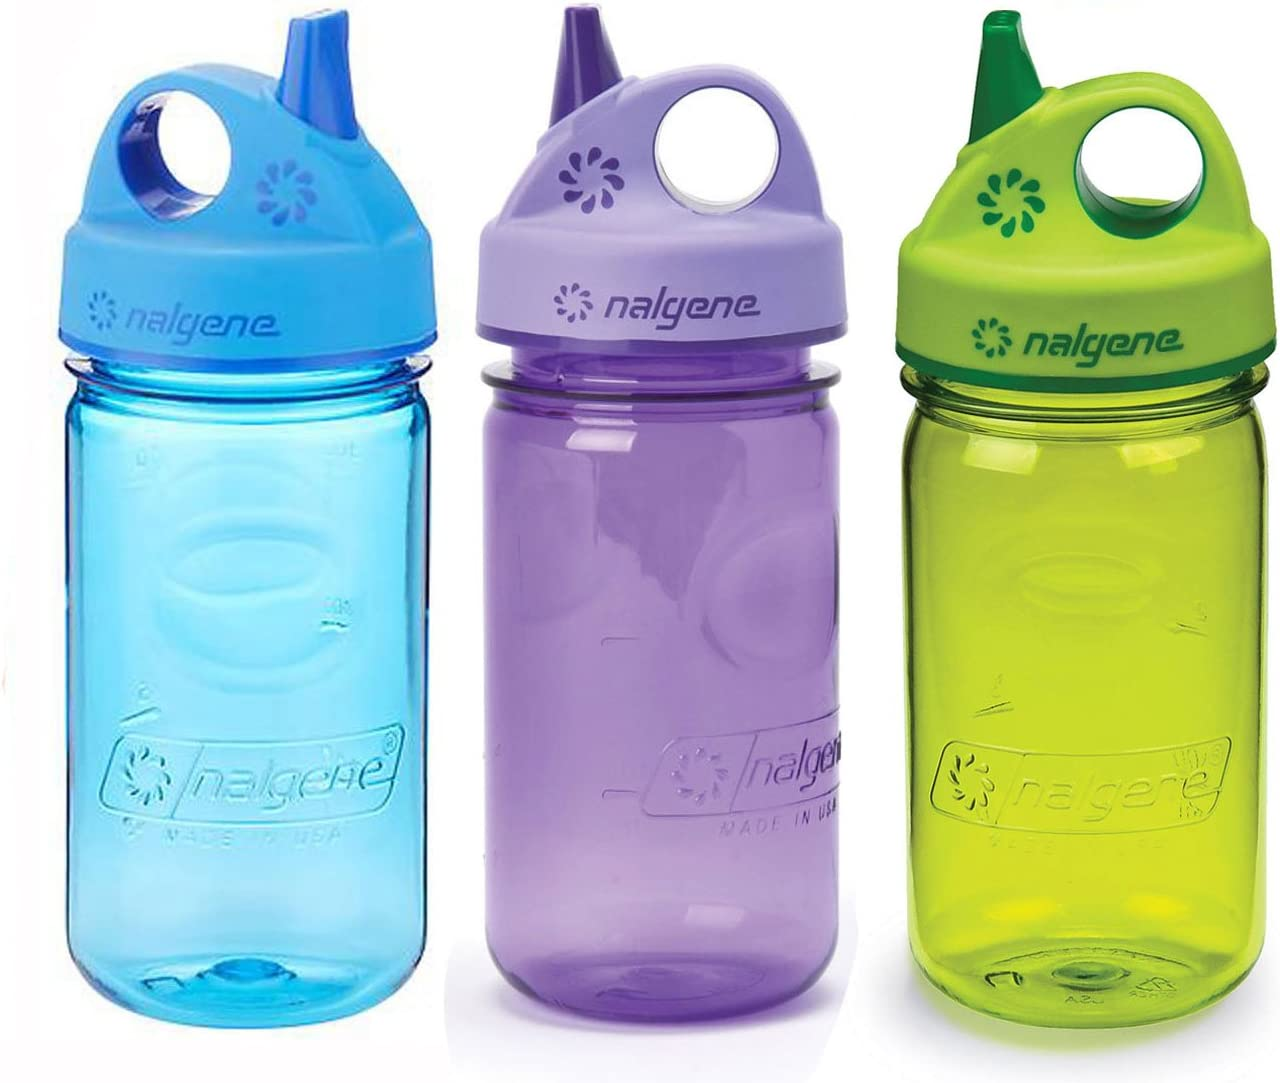 Nalgene Kids Grip-n-Gulp 12oz. Water Bottles, 3 Bottle Bundle Pack